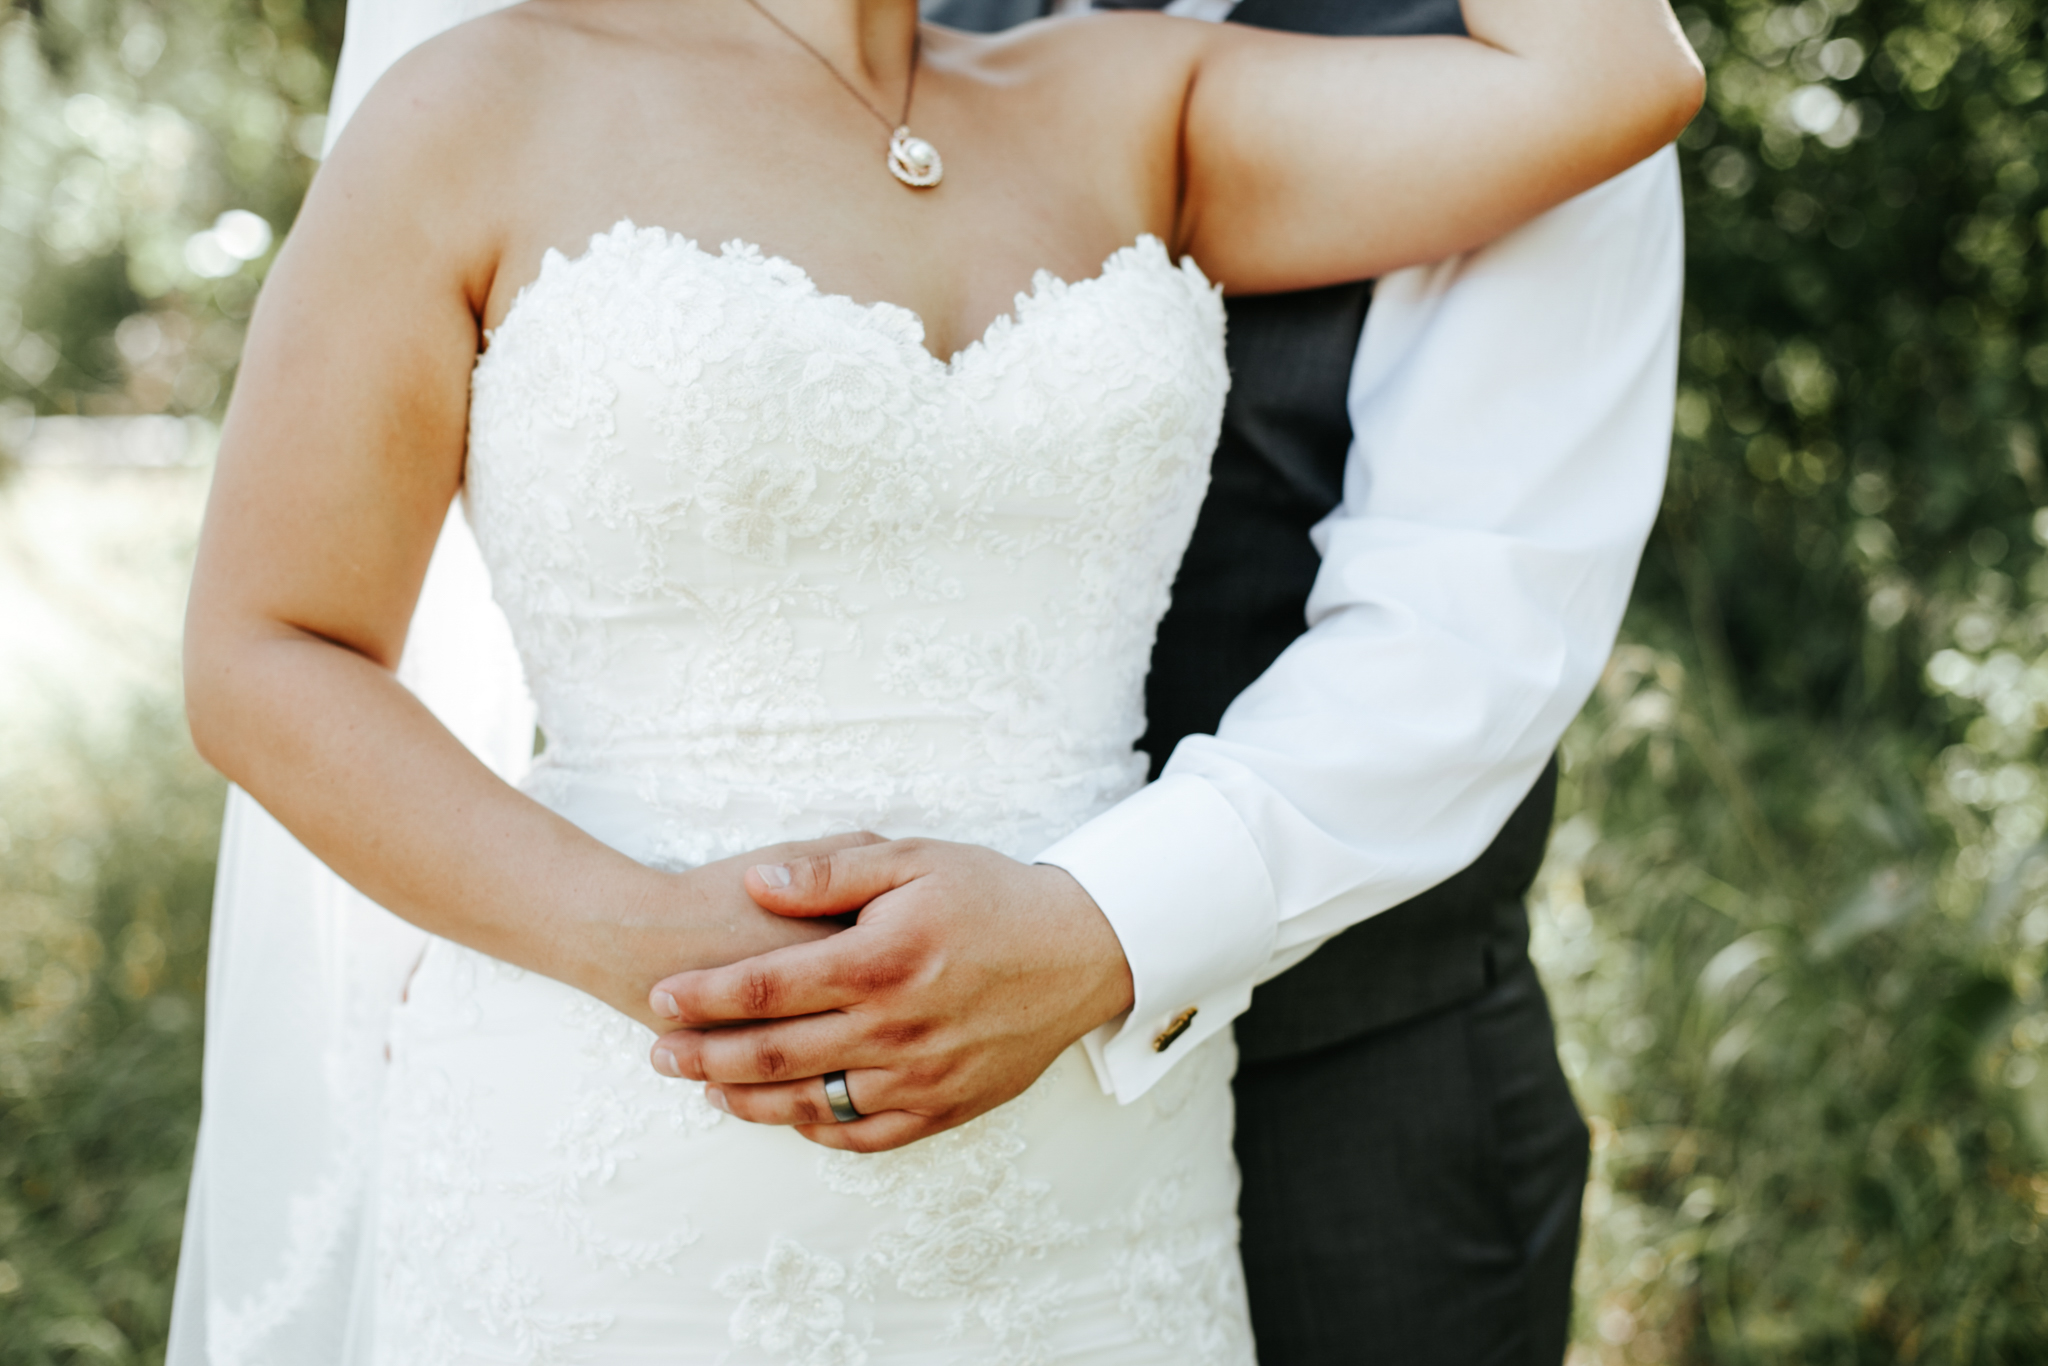 lethbridge-wedding-photographer-love-and-be-loved-photography-trent-danielle-galt-reception-picture-image-photo-120.jpg